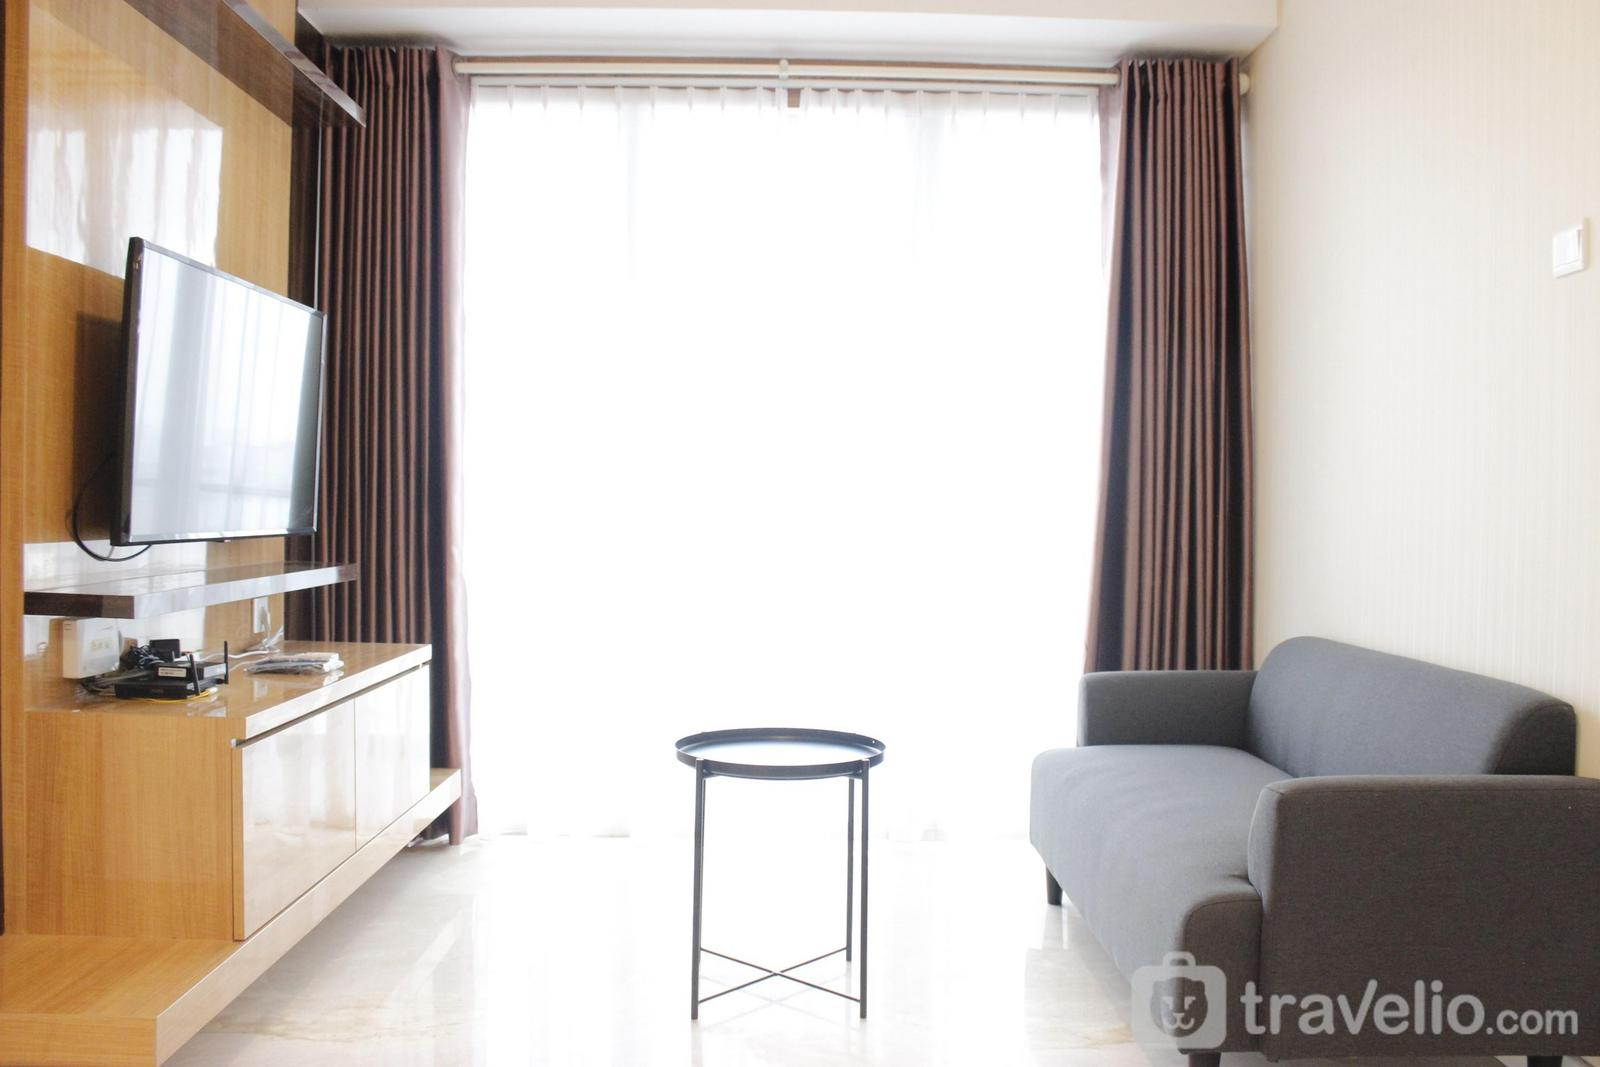 Apartemen Landmark Residence Bandung - Deluxe & Cozy 2BR Apartment at Landmark Residence By Travelio